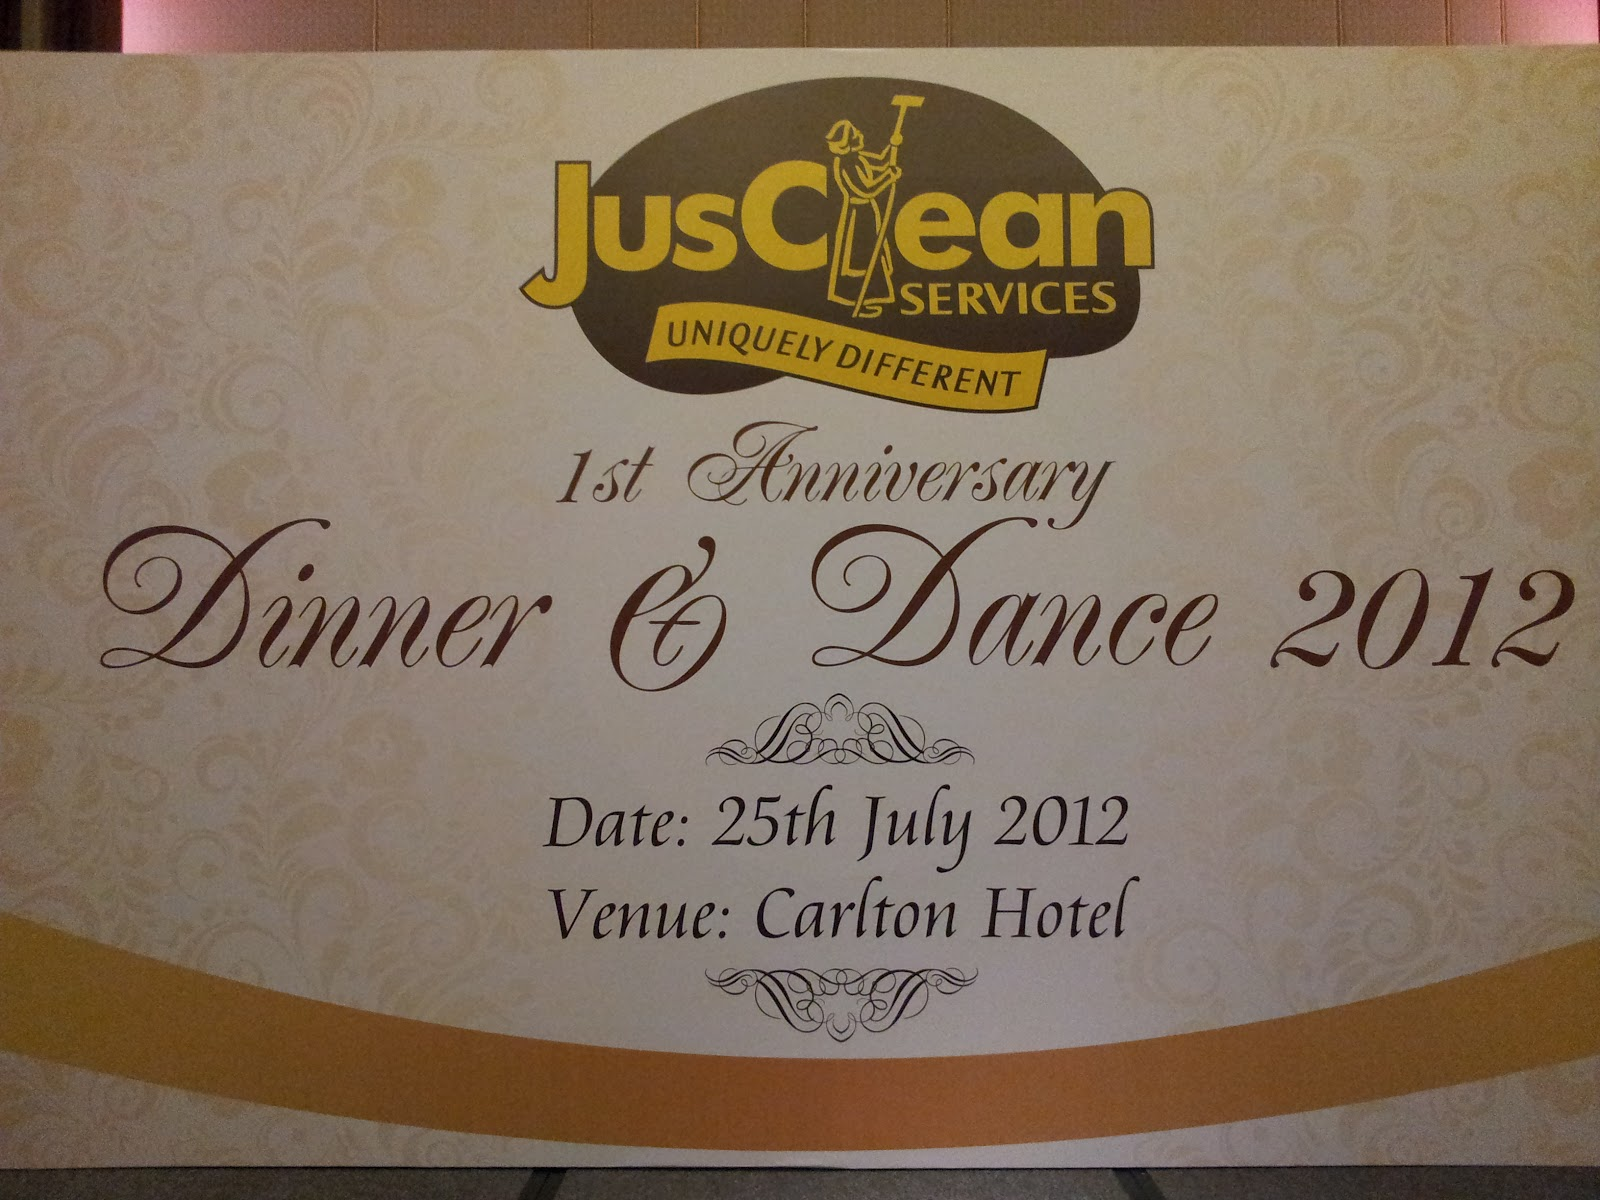 Emcee richard style: jusclean services 1st anniversary dinner